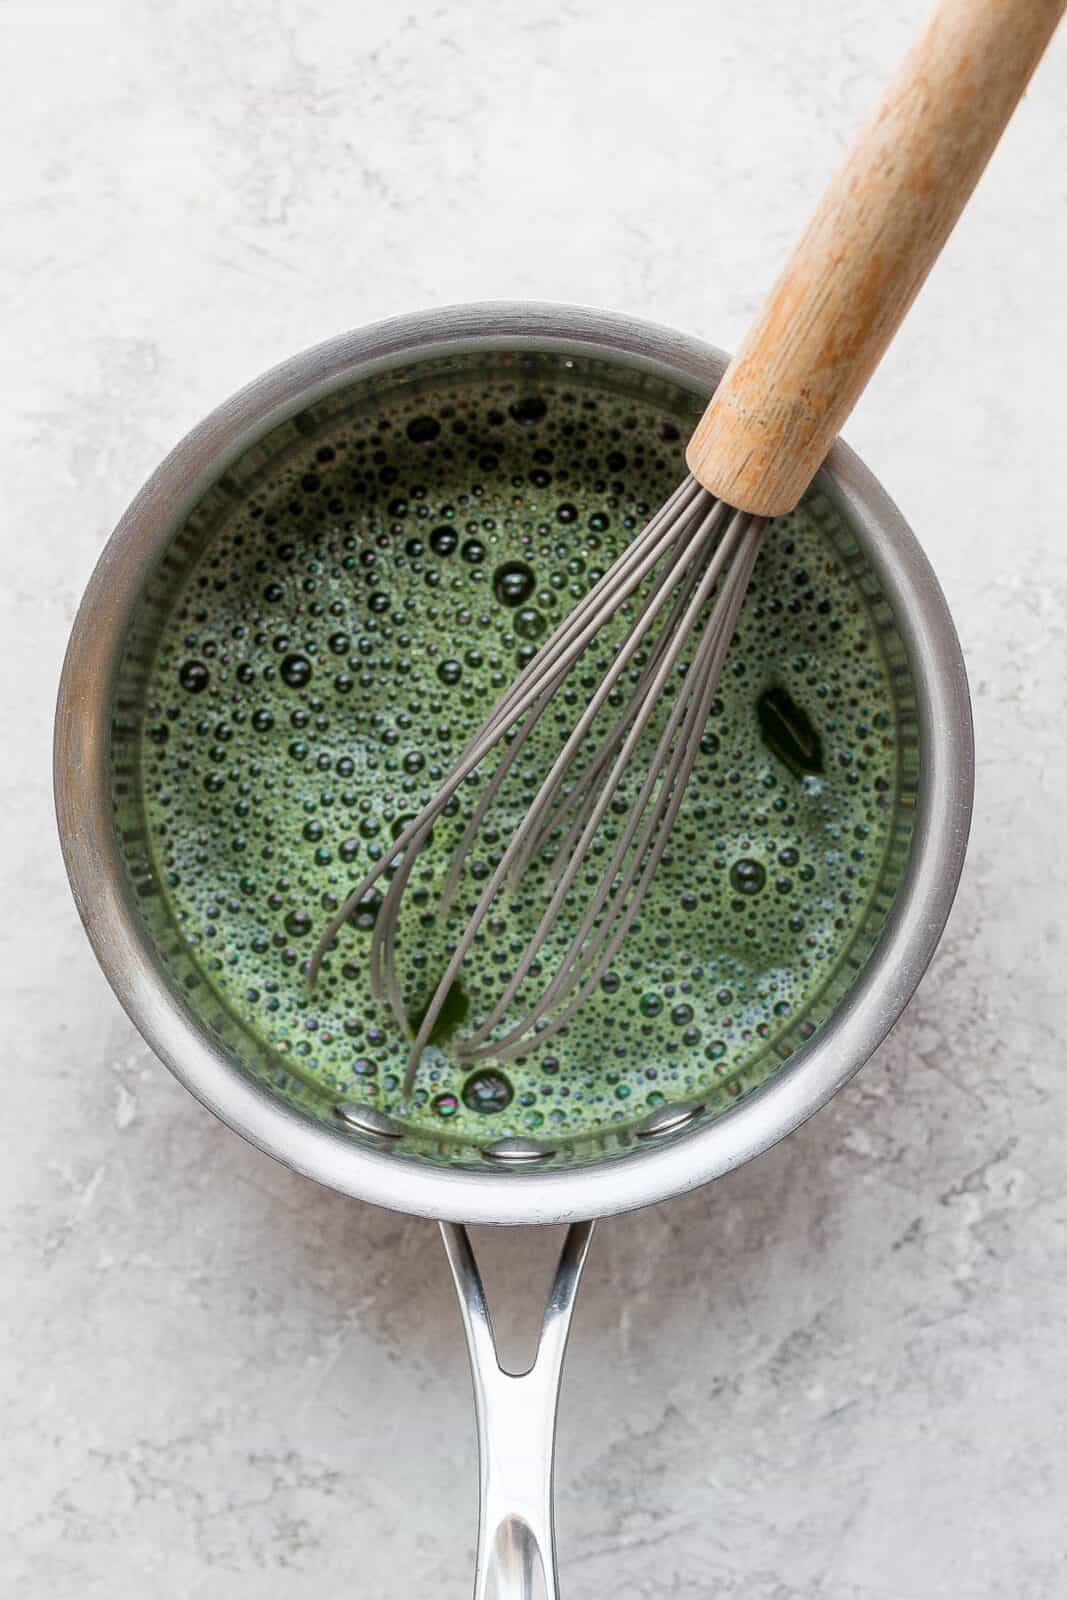 A small saucepan with matcha inside and a wooden whisk sticking out.